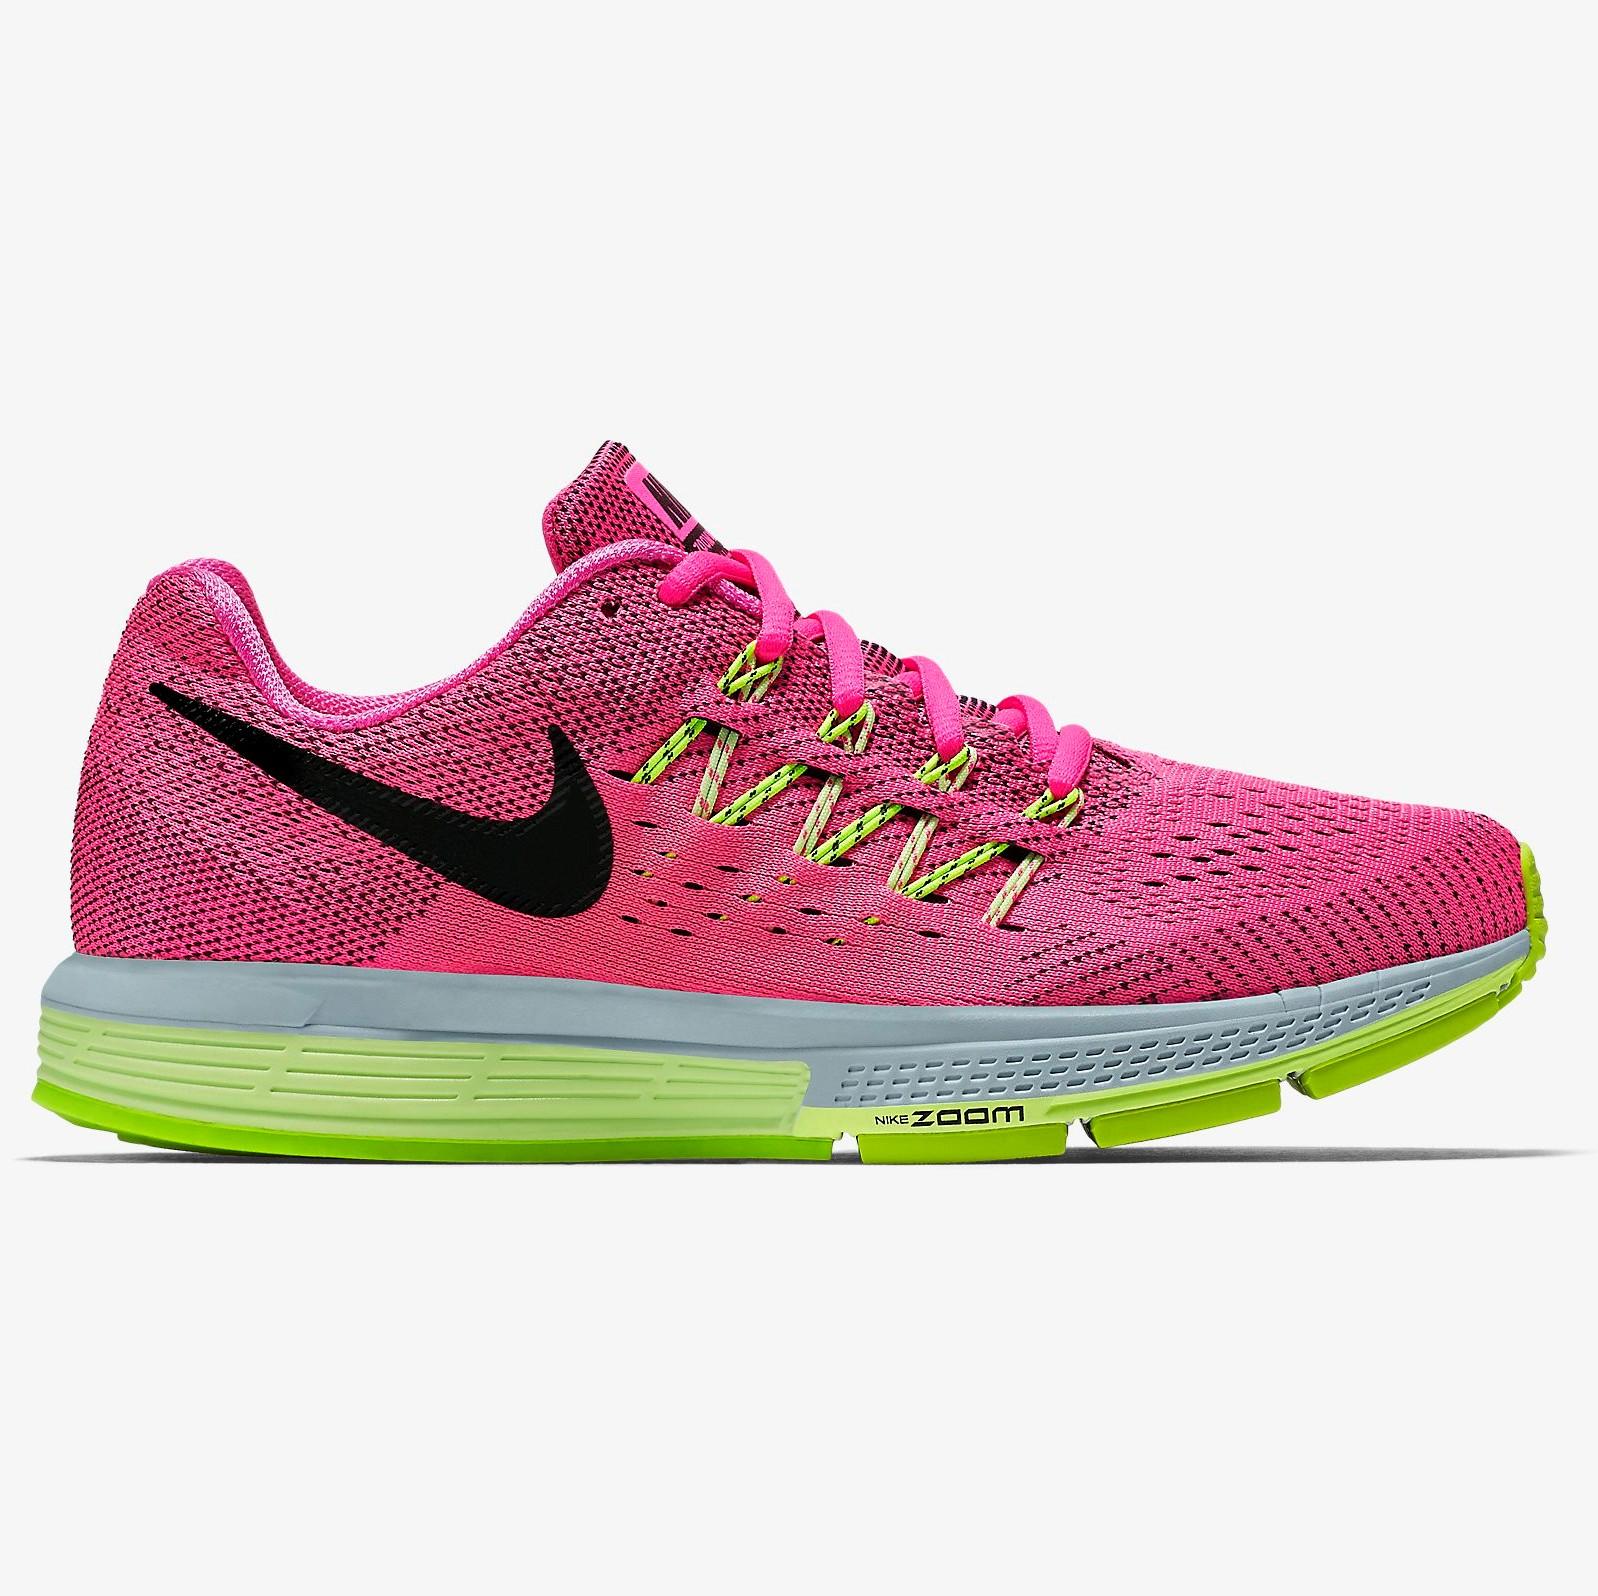 sports shoes f05f6 2e365 Nike Air Zoom Vomero 10 717440-603